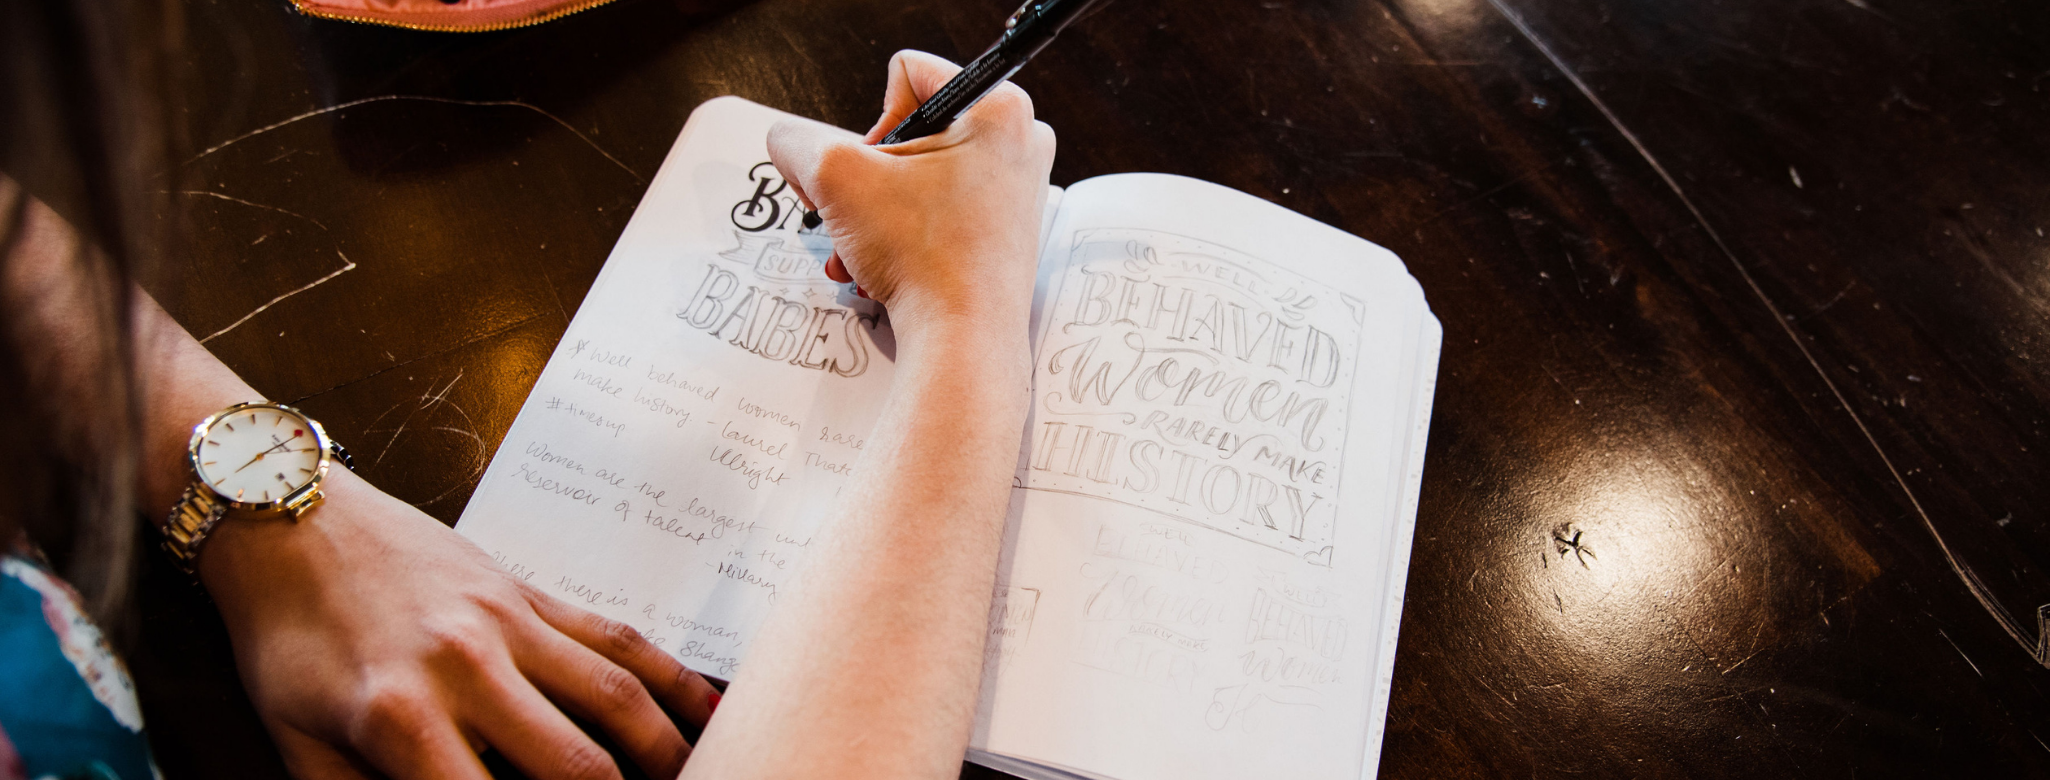 Hand writing with a pen in a notebook on a desk